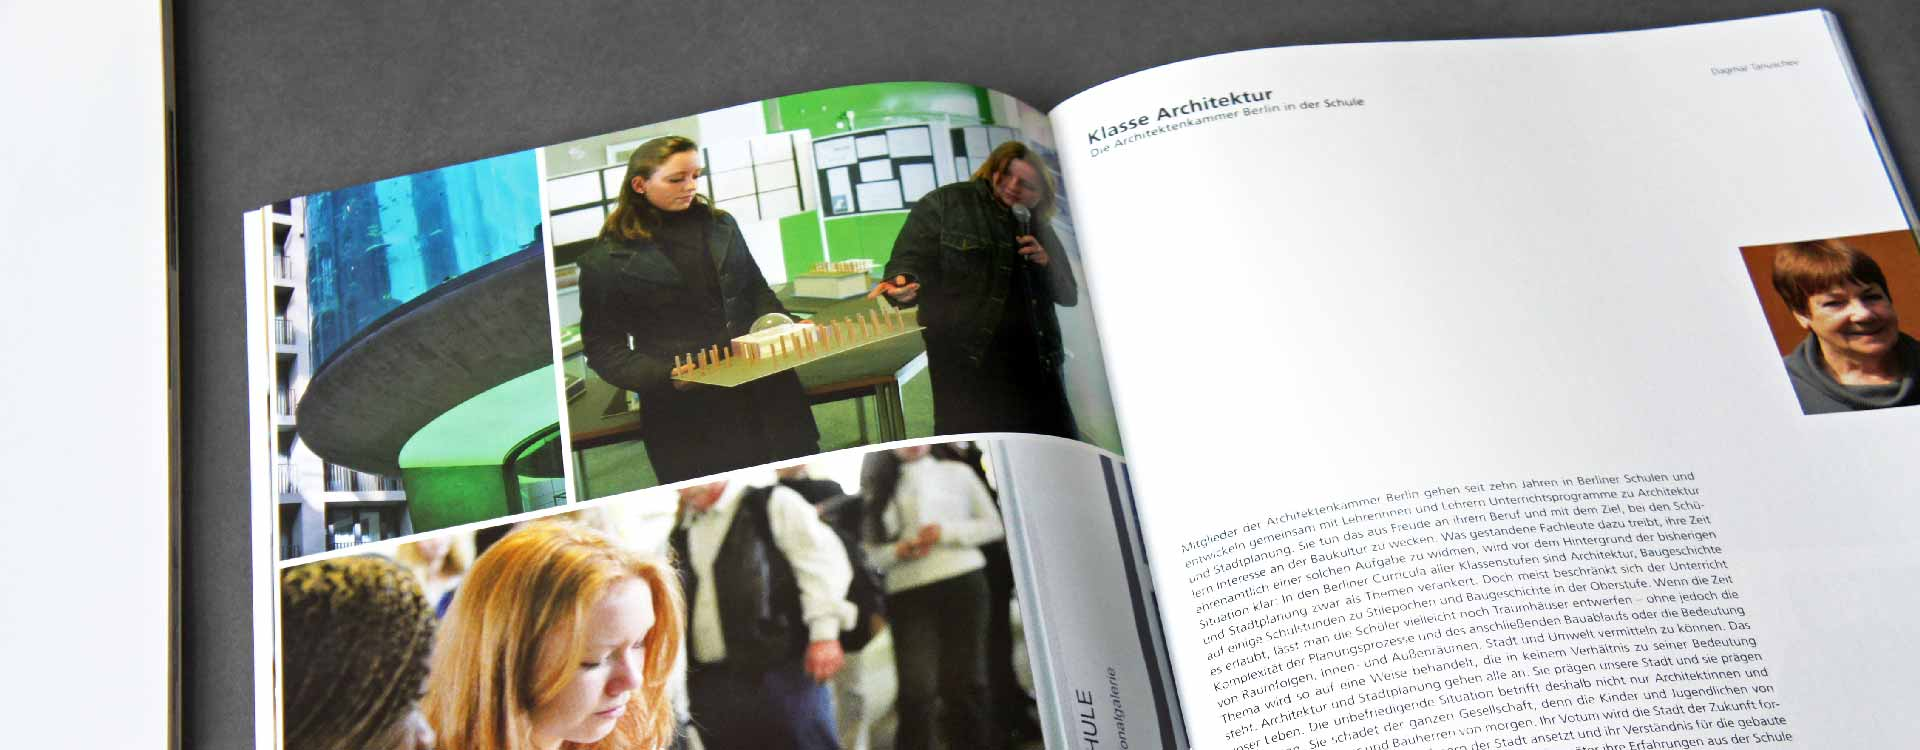 Inside pages of the brochure Architektur und Schule for the Chamber of Architects Berlin; Design: Kattrin Richter | Graphic Design Studio